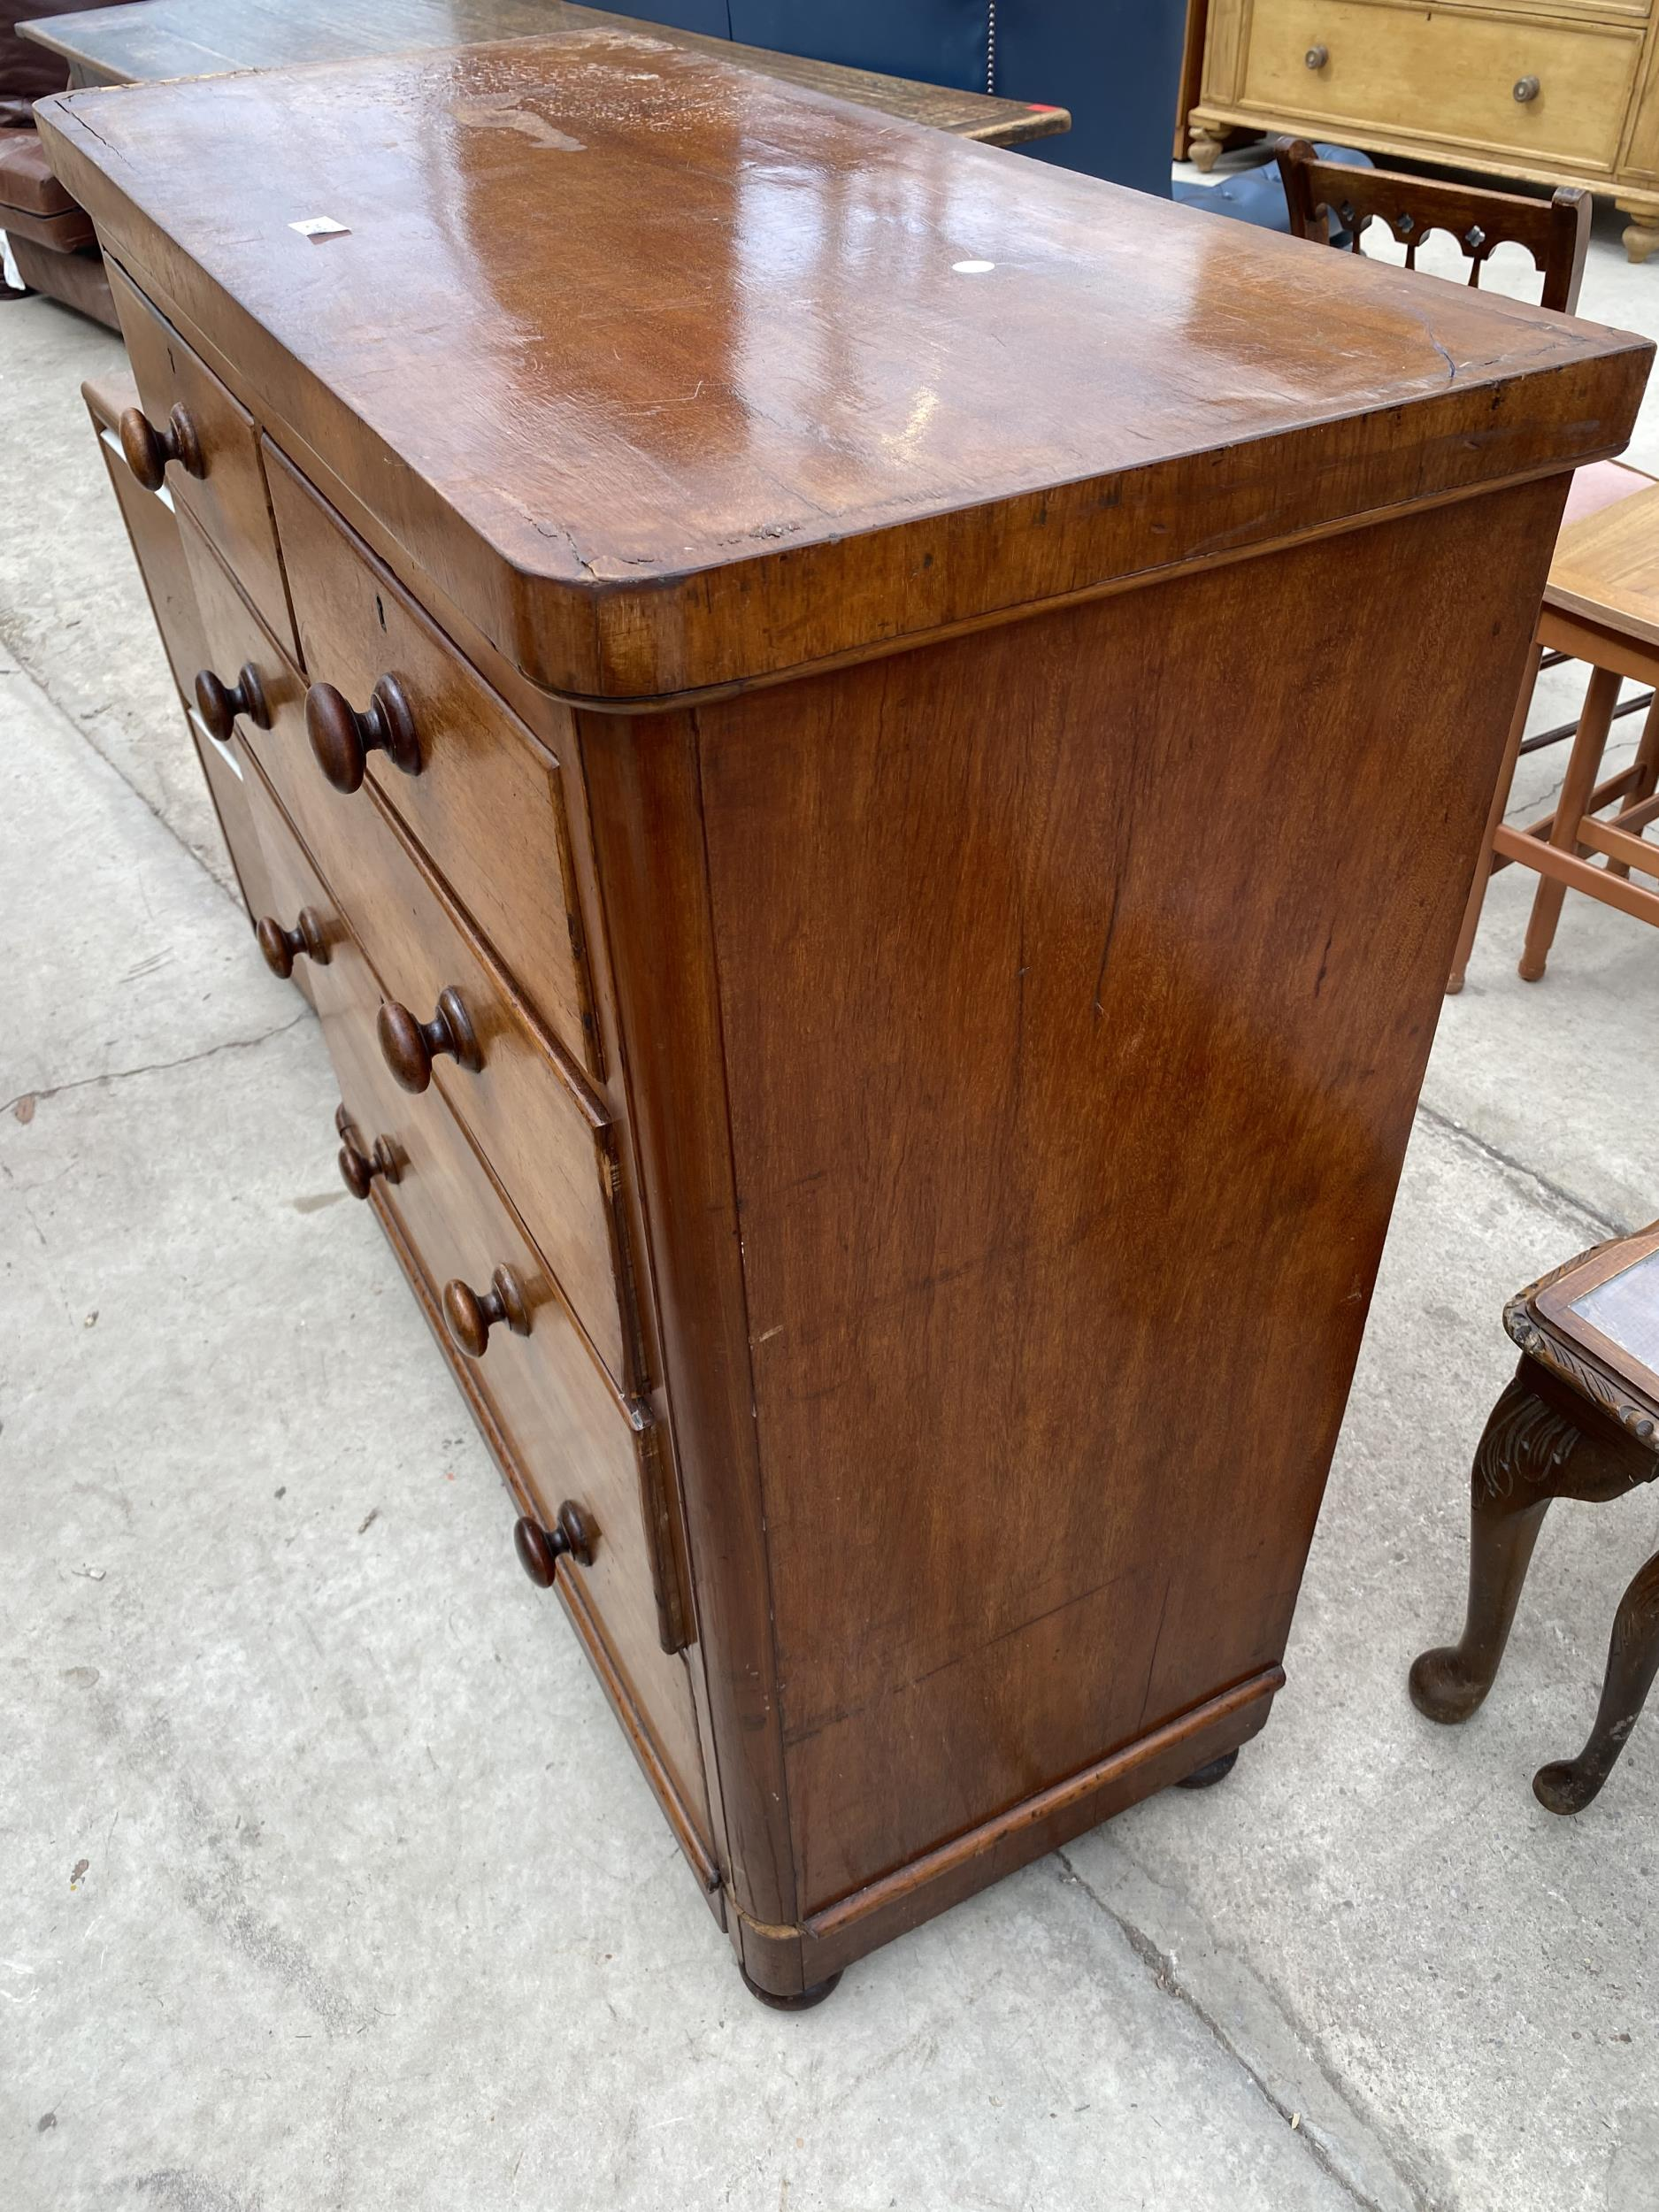 """A VICTORIAN MAHOGANY CHEST OF TWO SHORT AND THREE LONG DRAWERS 40.5"""" WIDE - Image 3 of 3"""